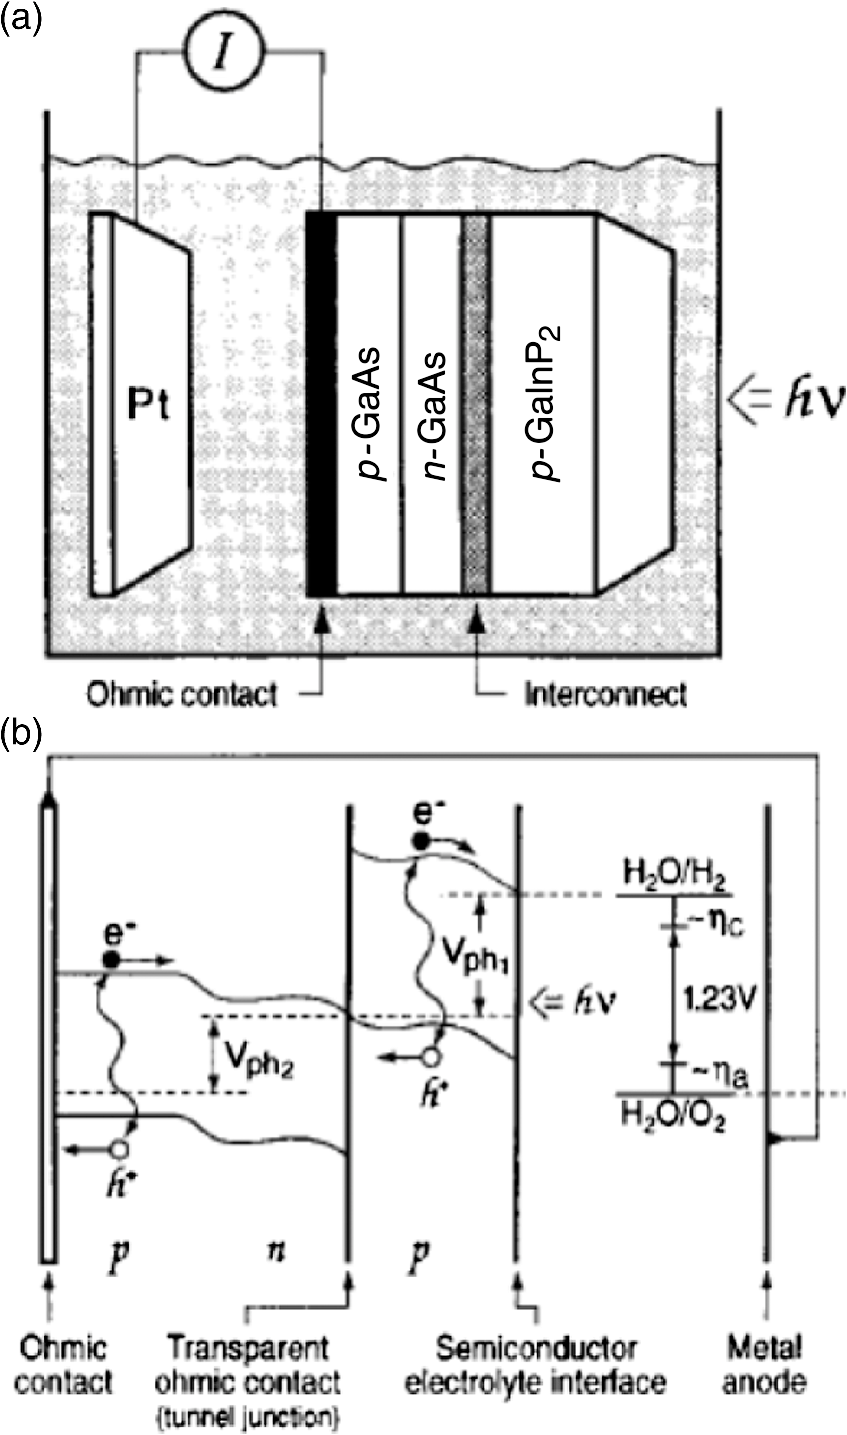 The Role Of Photonics In Energy Telephone Hybrid Circuit Diagram Eav Tech Jk Audio A Schematic Monolithic Pec Pv Device B Idealized Level For Photoelectrolysis